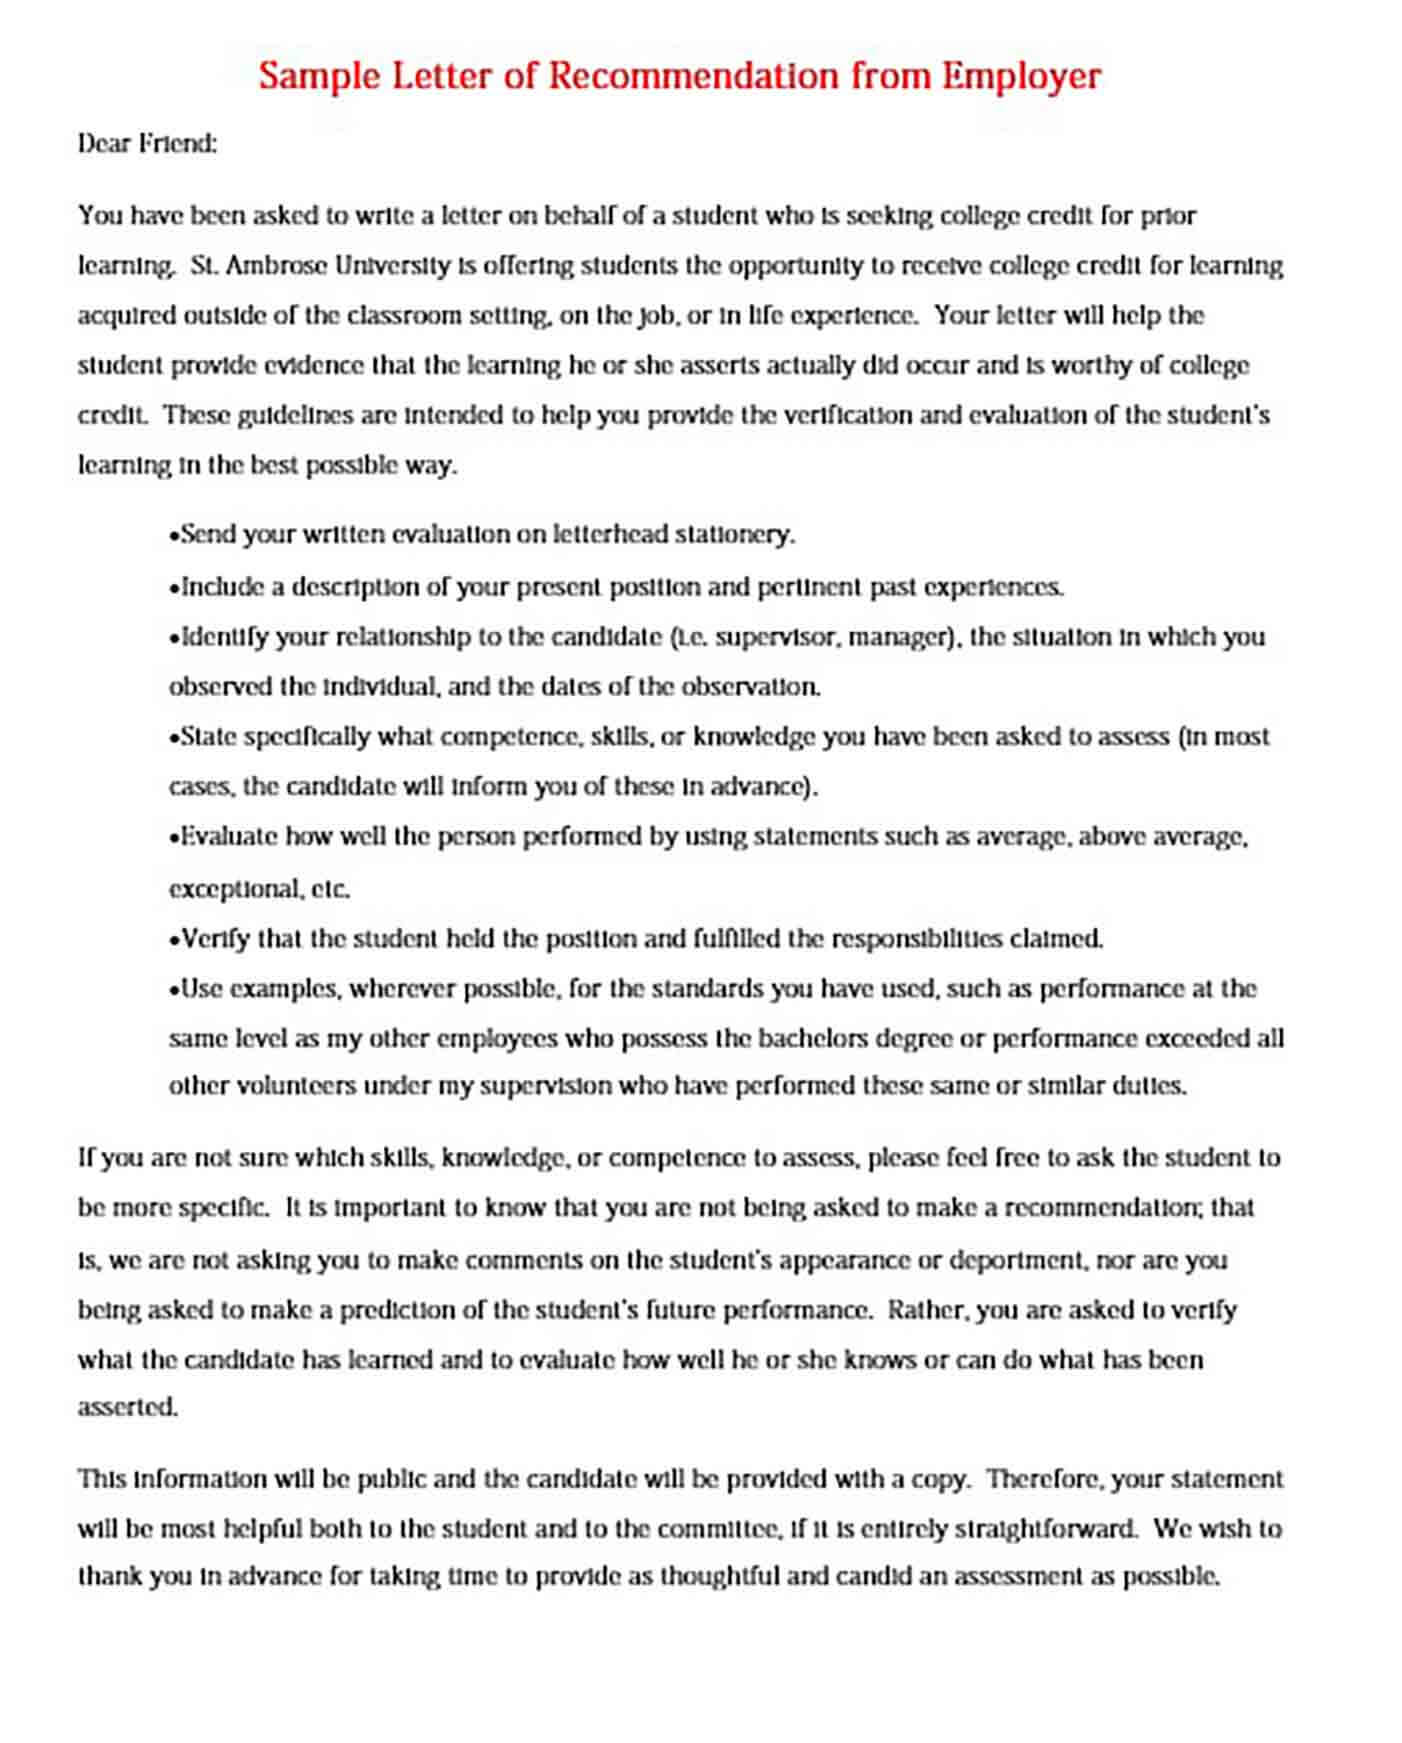 Sample Letter of Recommendation from Employer